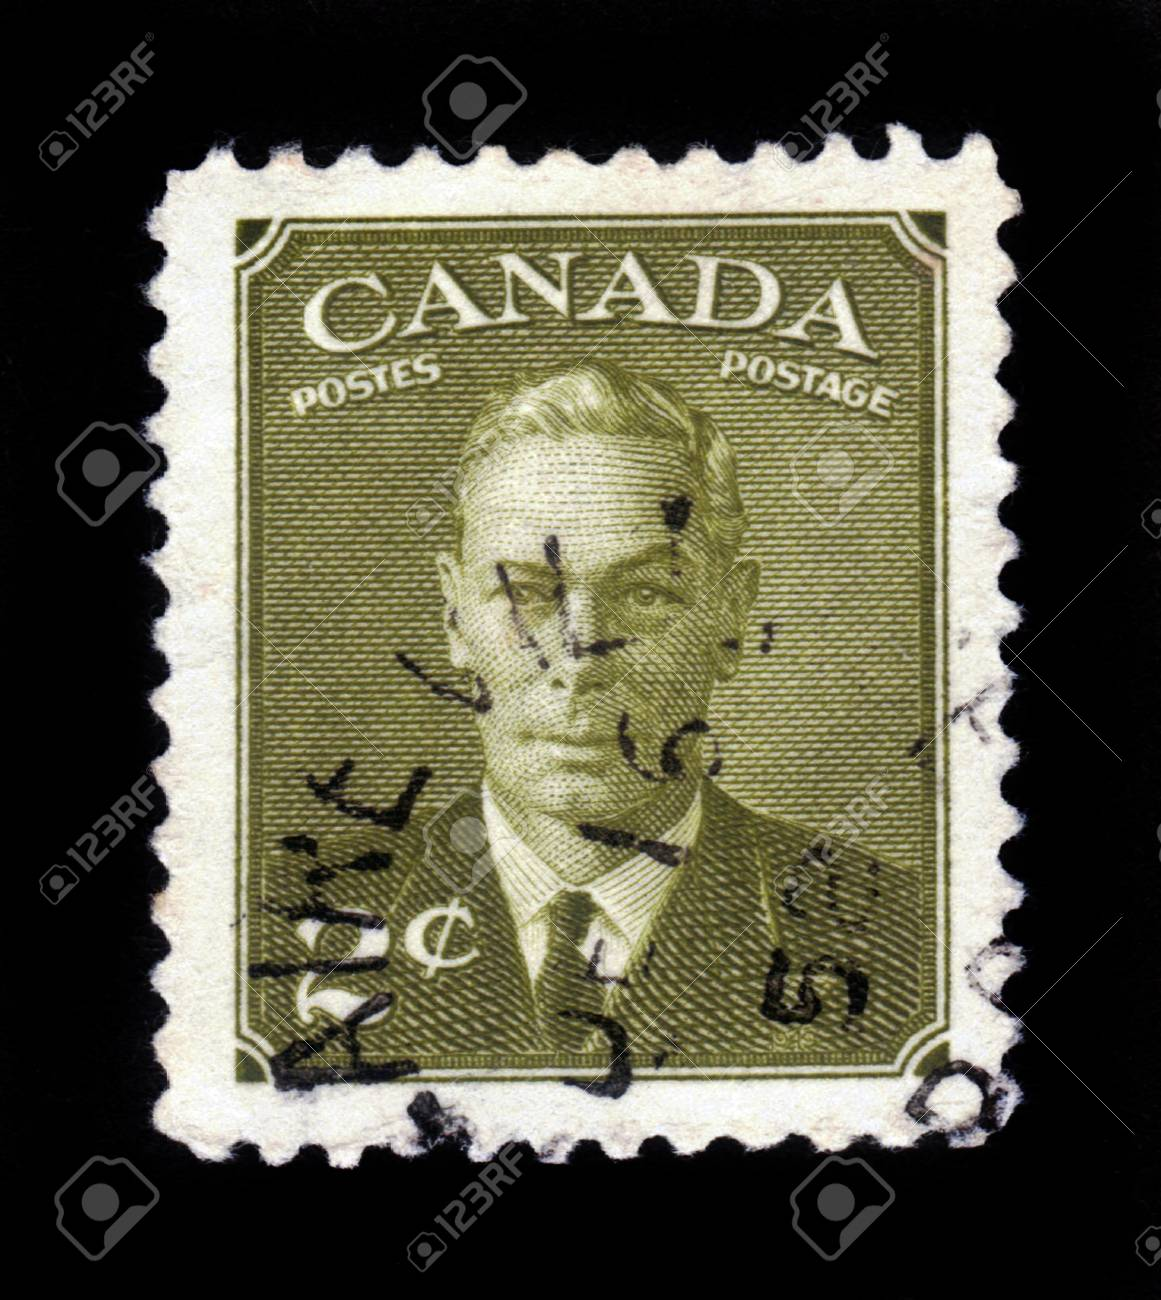 CANADA - CIRCA 1949 a stamp printed in the Canada shows King George VI, King of England, circa 1949 Stock Photo - 17326956